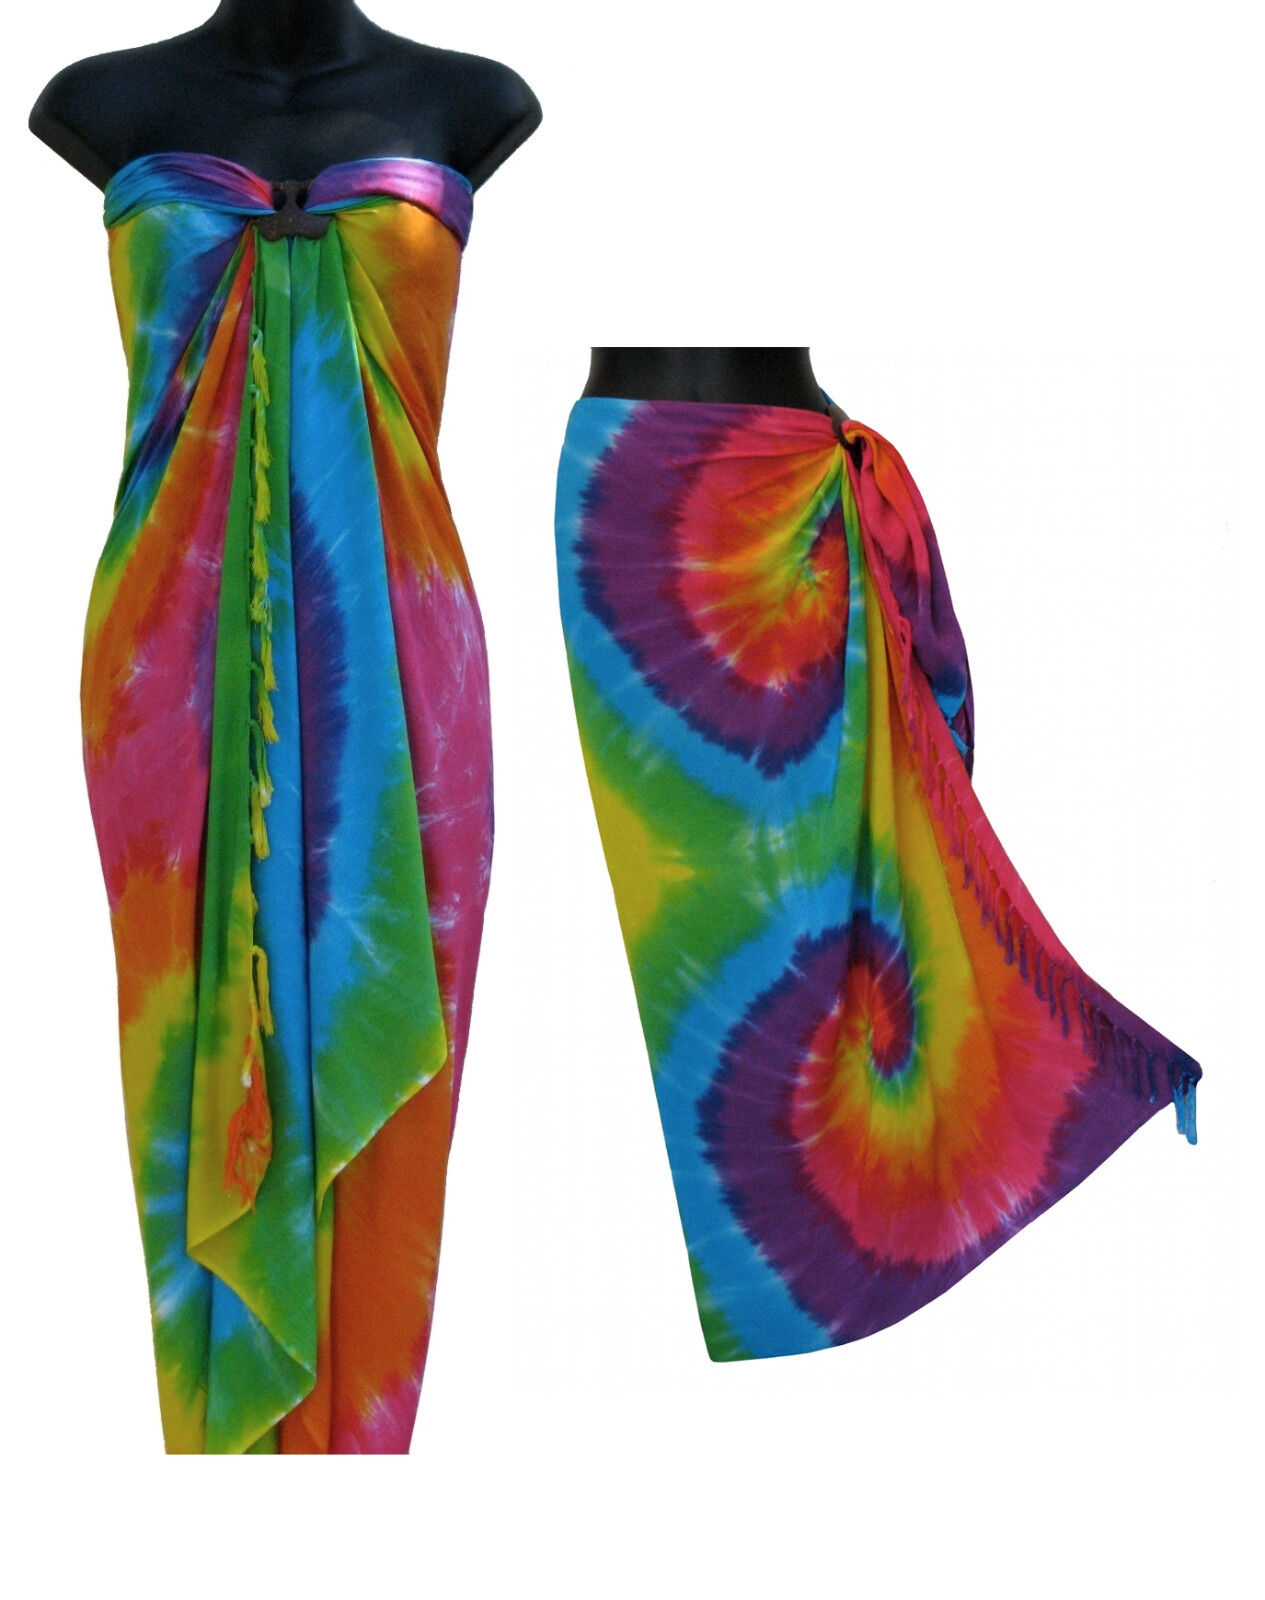 Rainbow Spiral Tie Dye Sarong Summer Beach Cover Up Skirt To